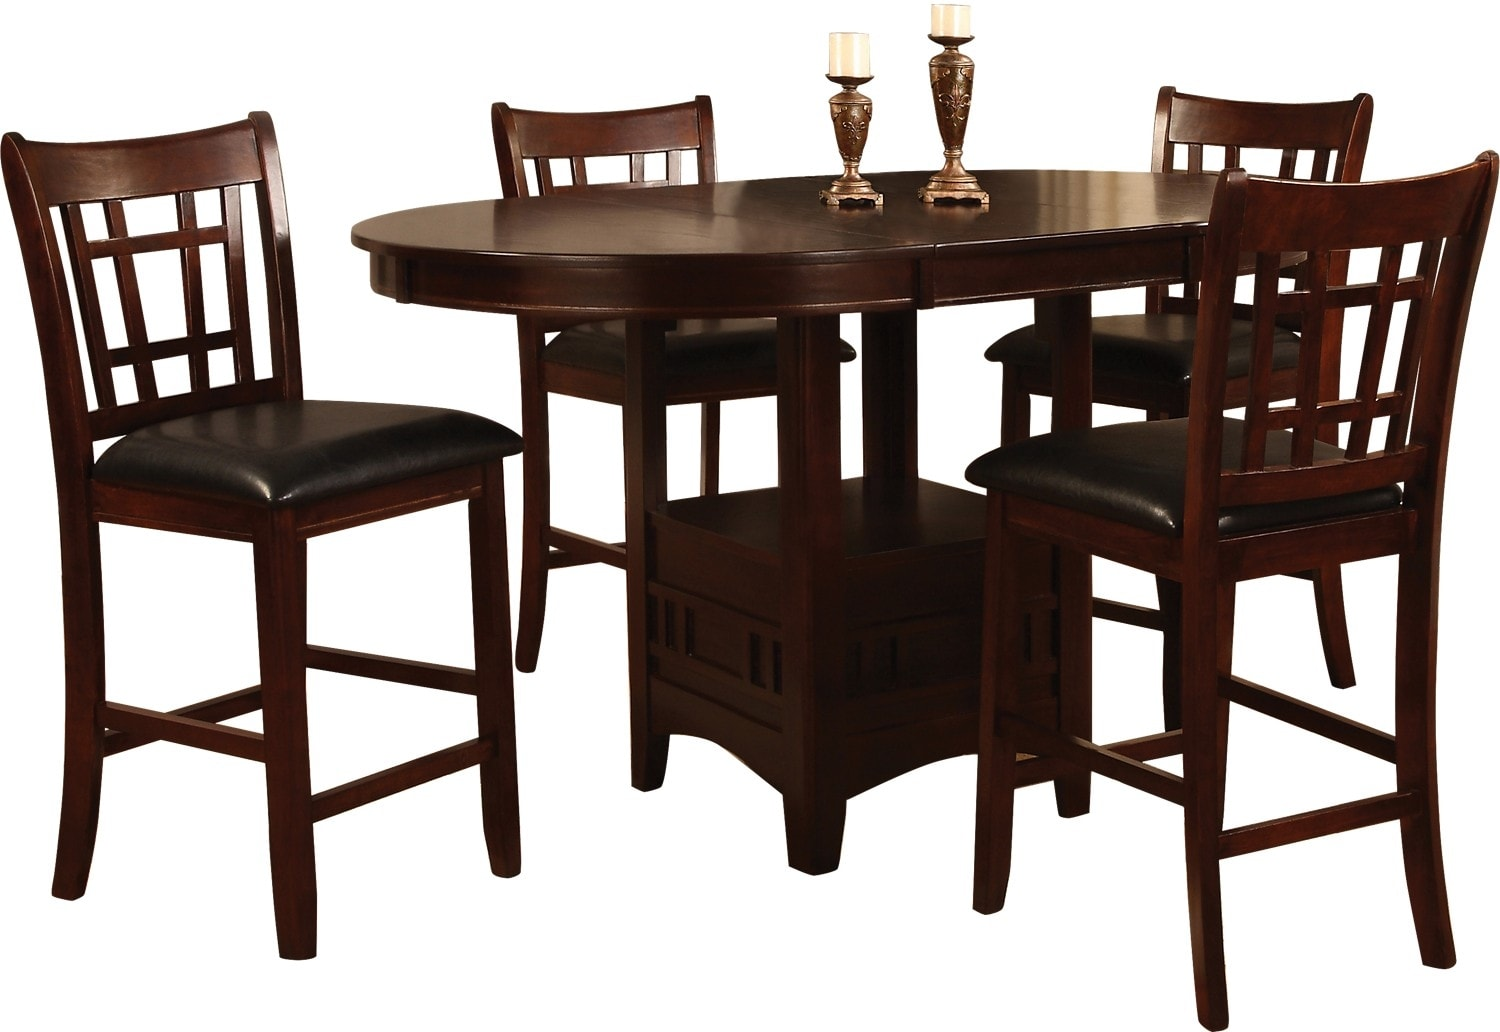 Dining Room Furniture - Dalton 5 Piece Chocolate Counter-Height  Dining Package